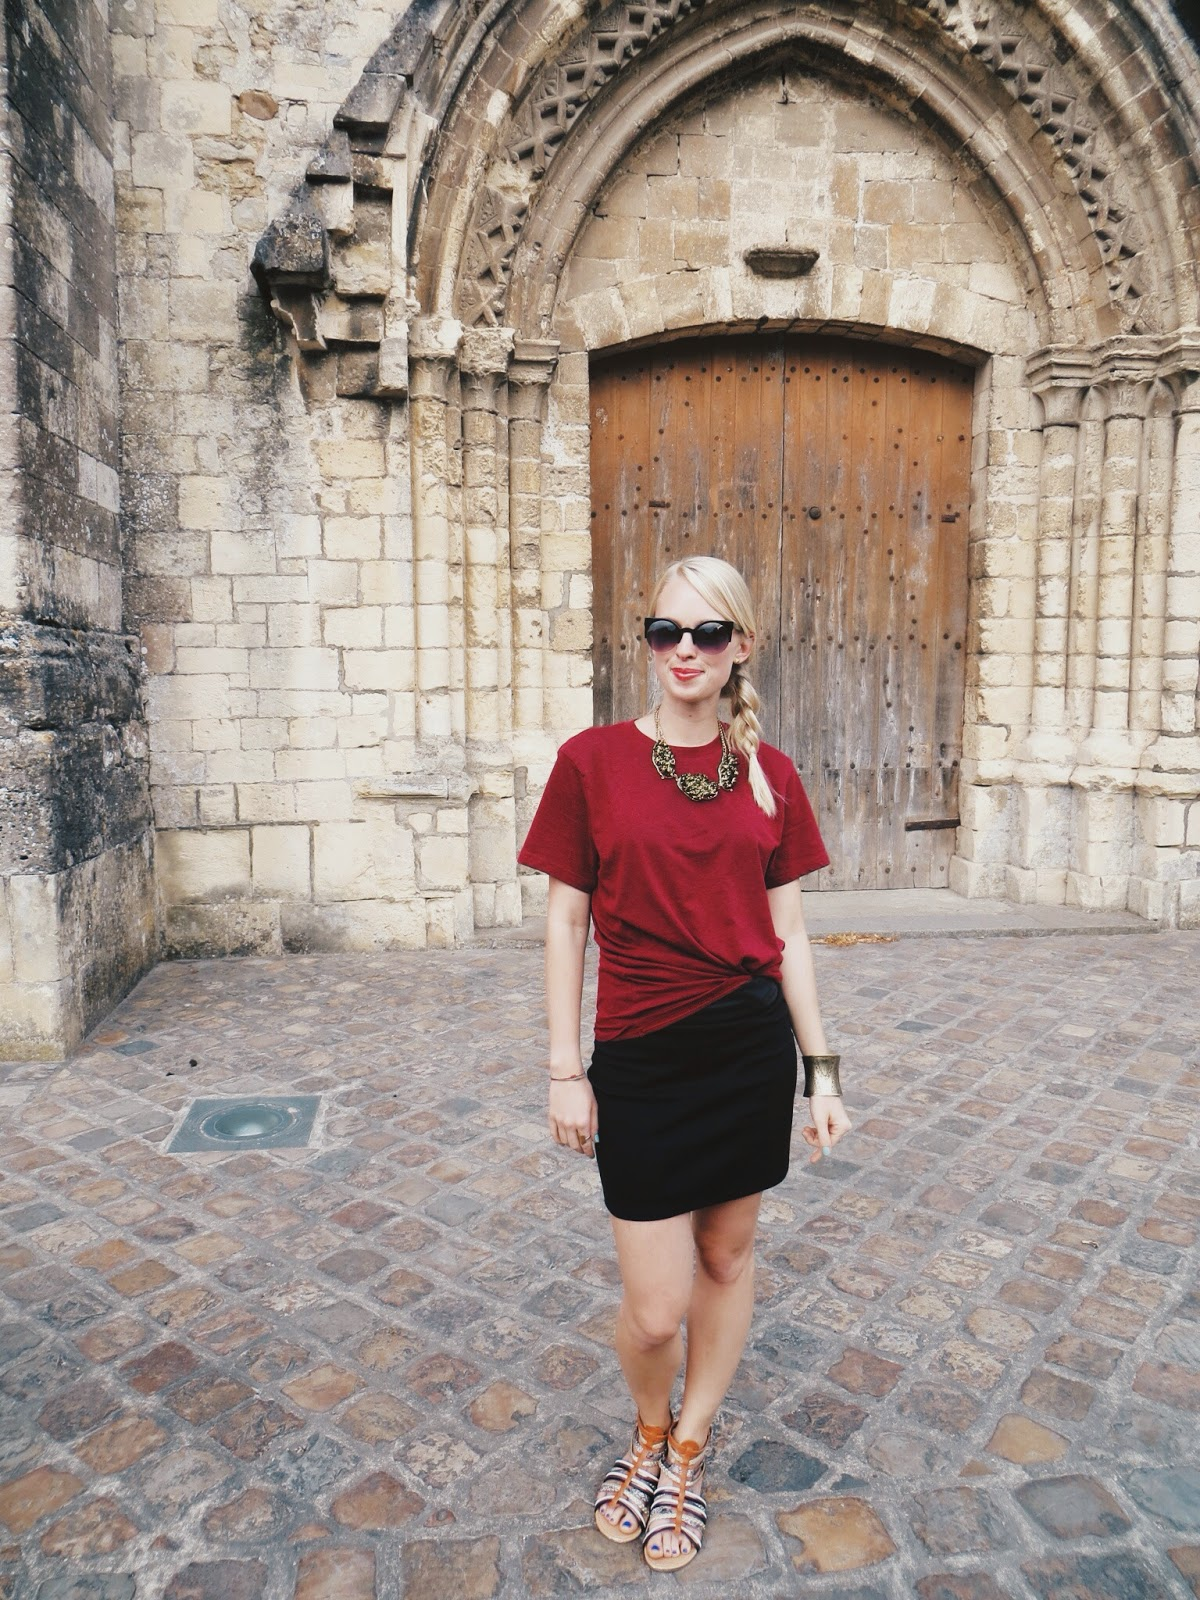 casual outfit, gladiator sandals, deb shops gladiator sandals, frat tuck, how to tie a shirt, how to tuck a shirt, mini skirt, statement necklace